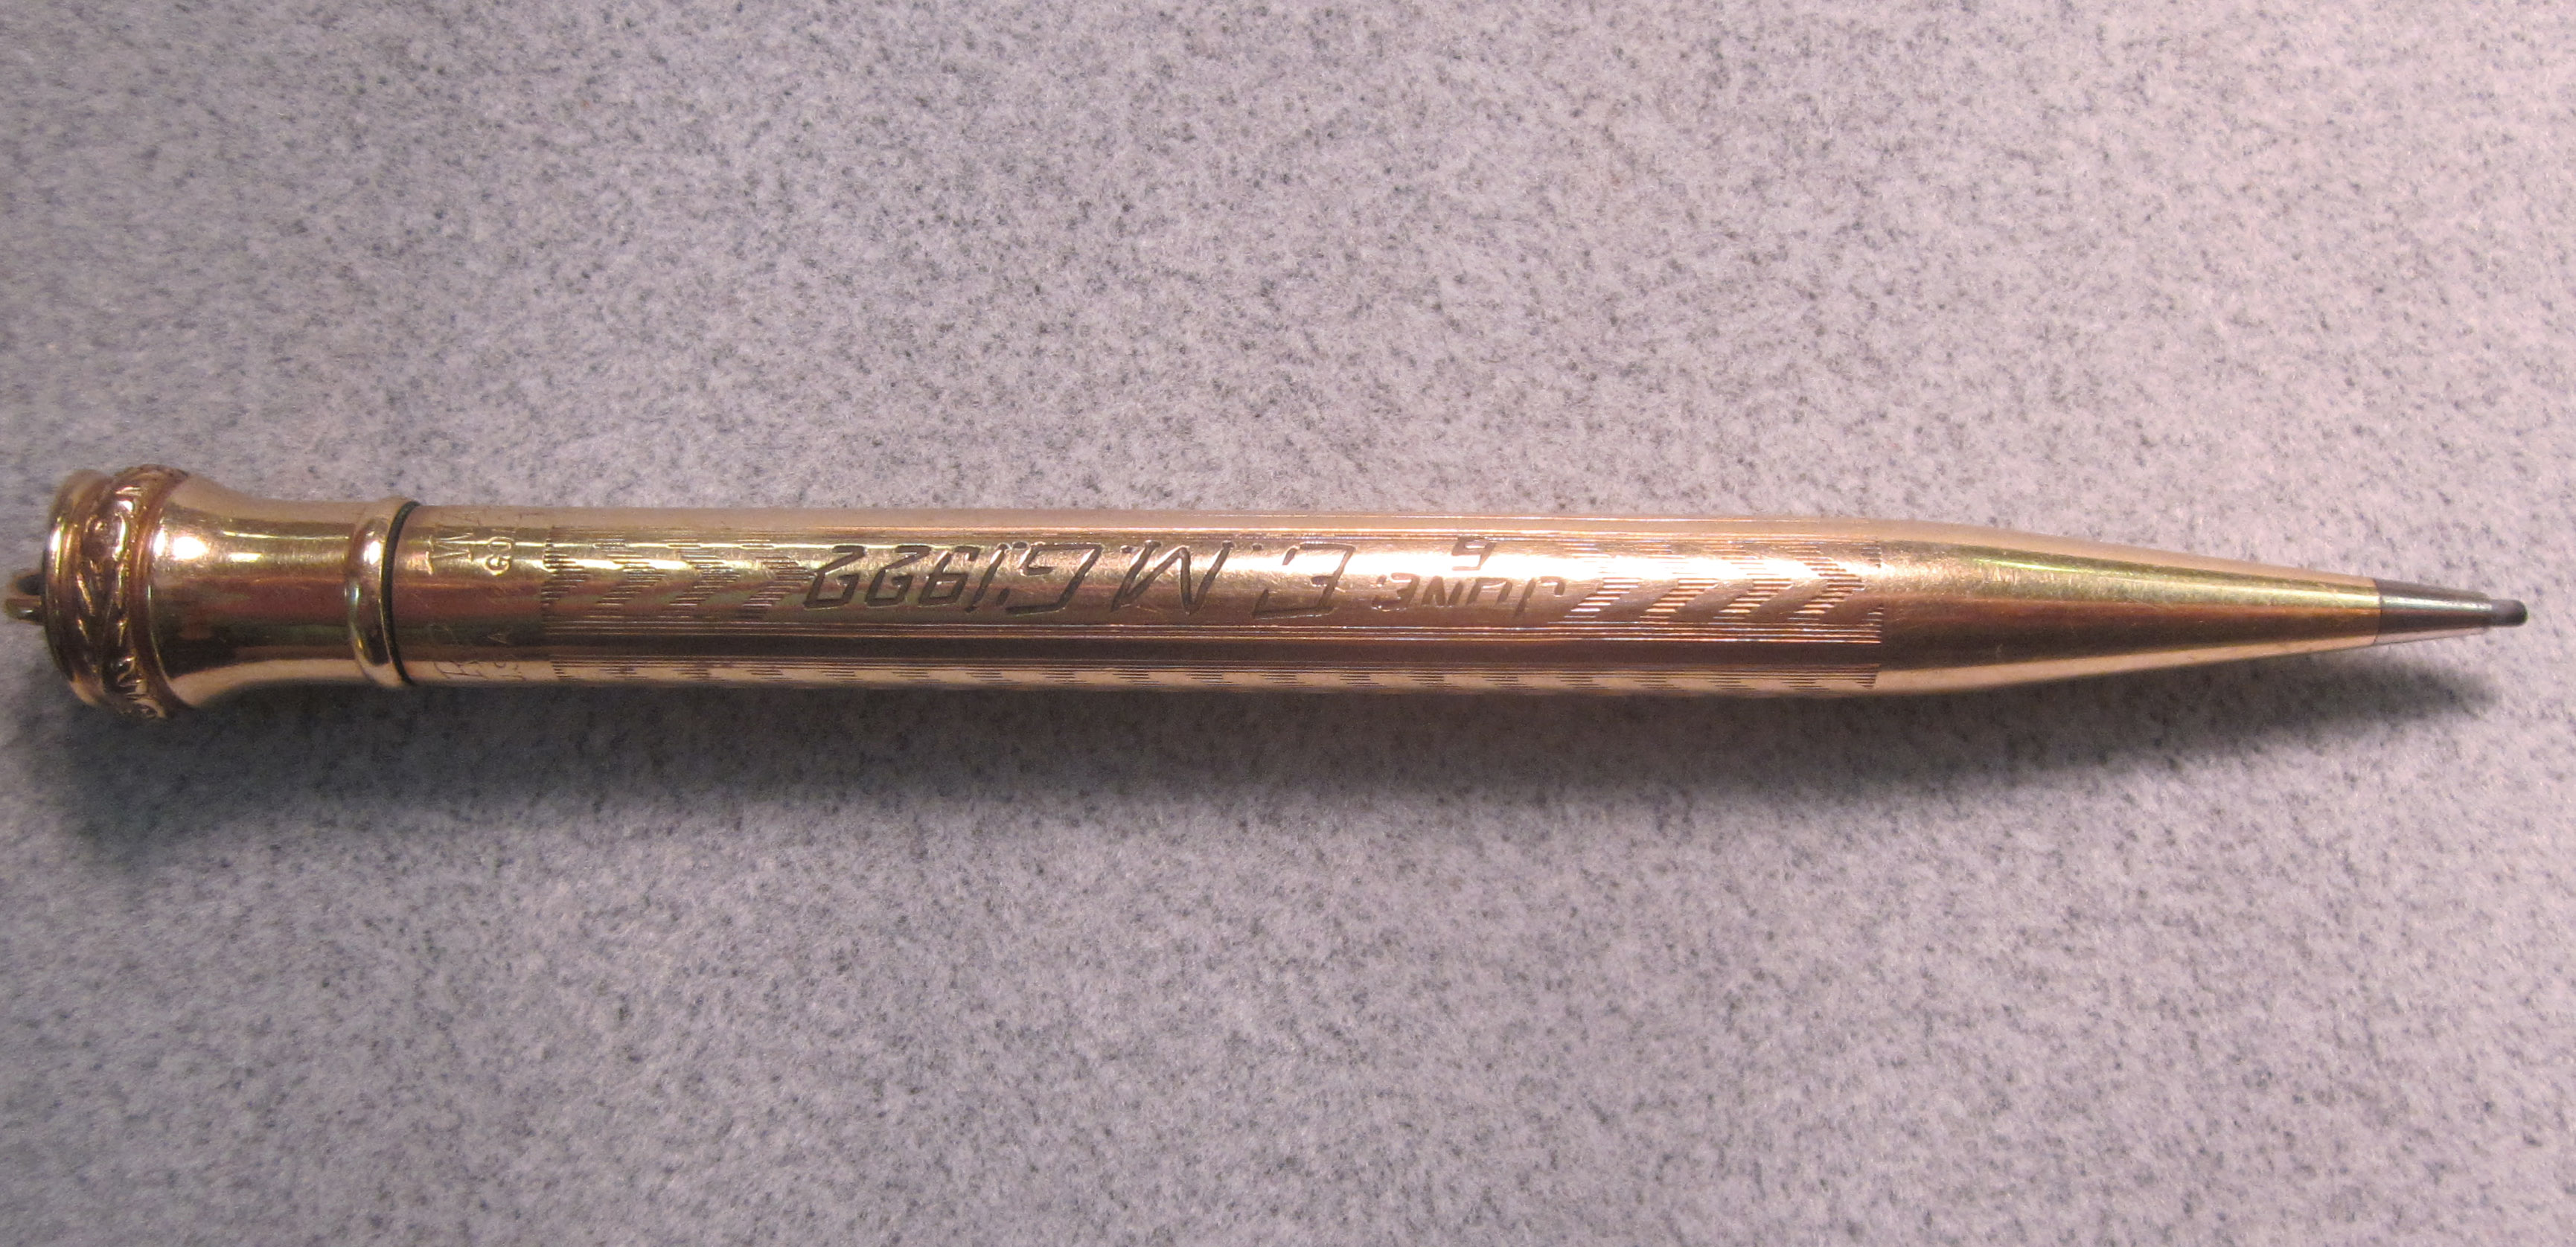 This Mechanical Pencil Is Inscribed With June 6 E M G 1922 It Has A Hanging Loop And Twist Mechanism To Project The Lead